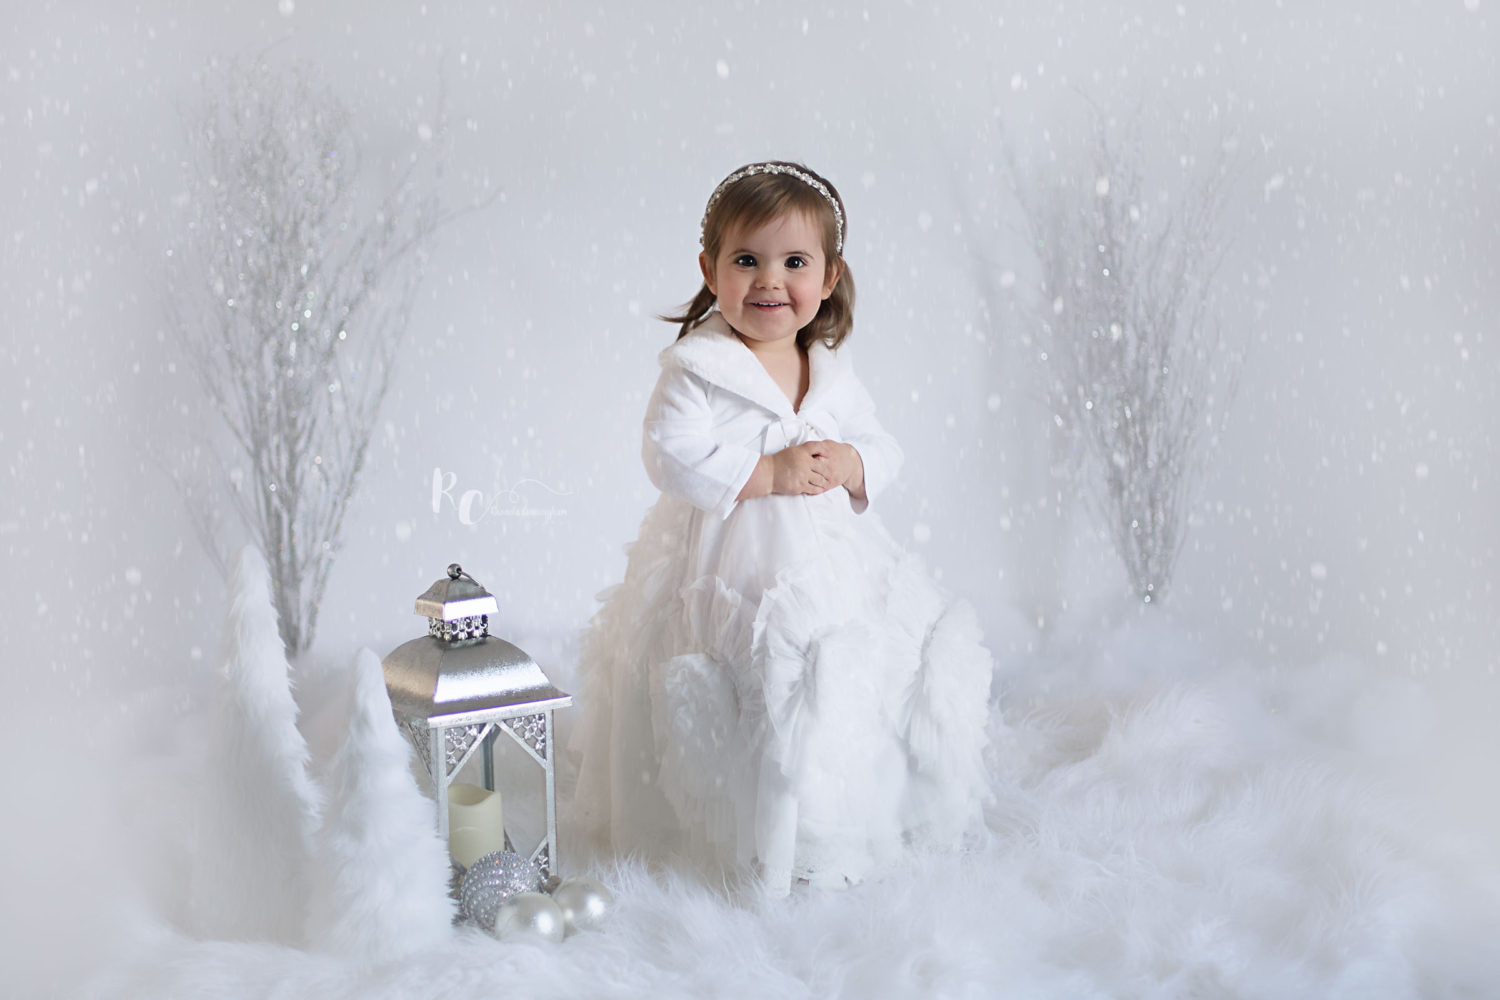 Limited Edition Winter themed session by Rhonda Cunningham, Lexington Family Photographer